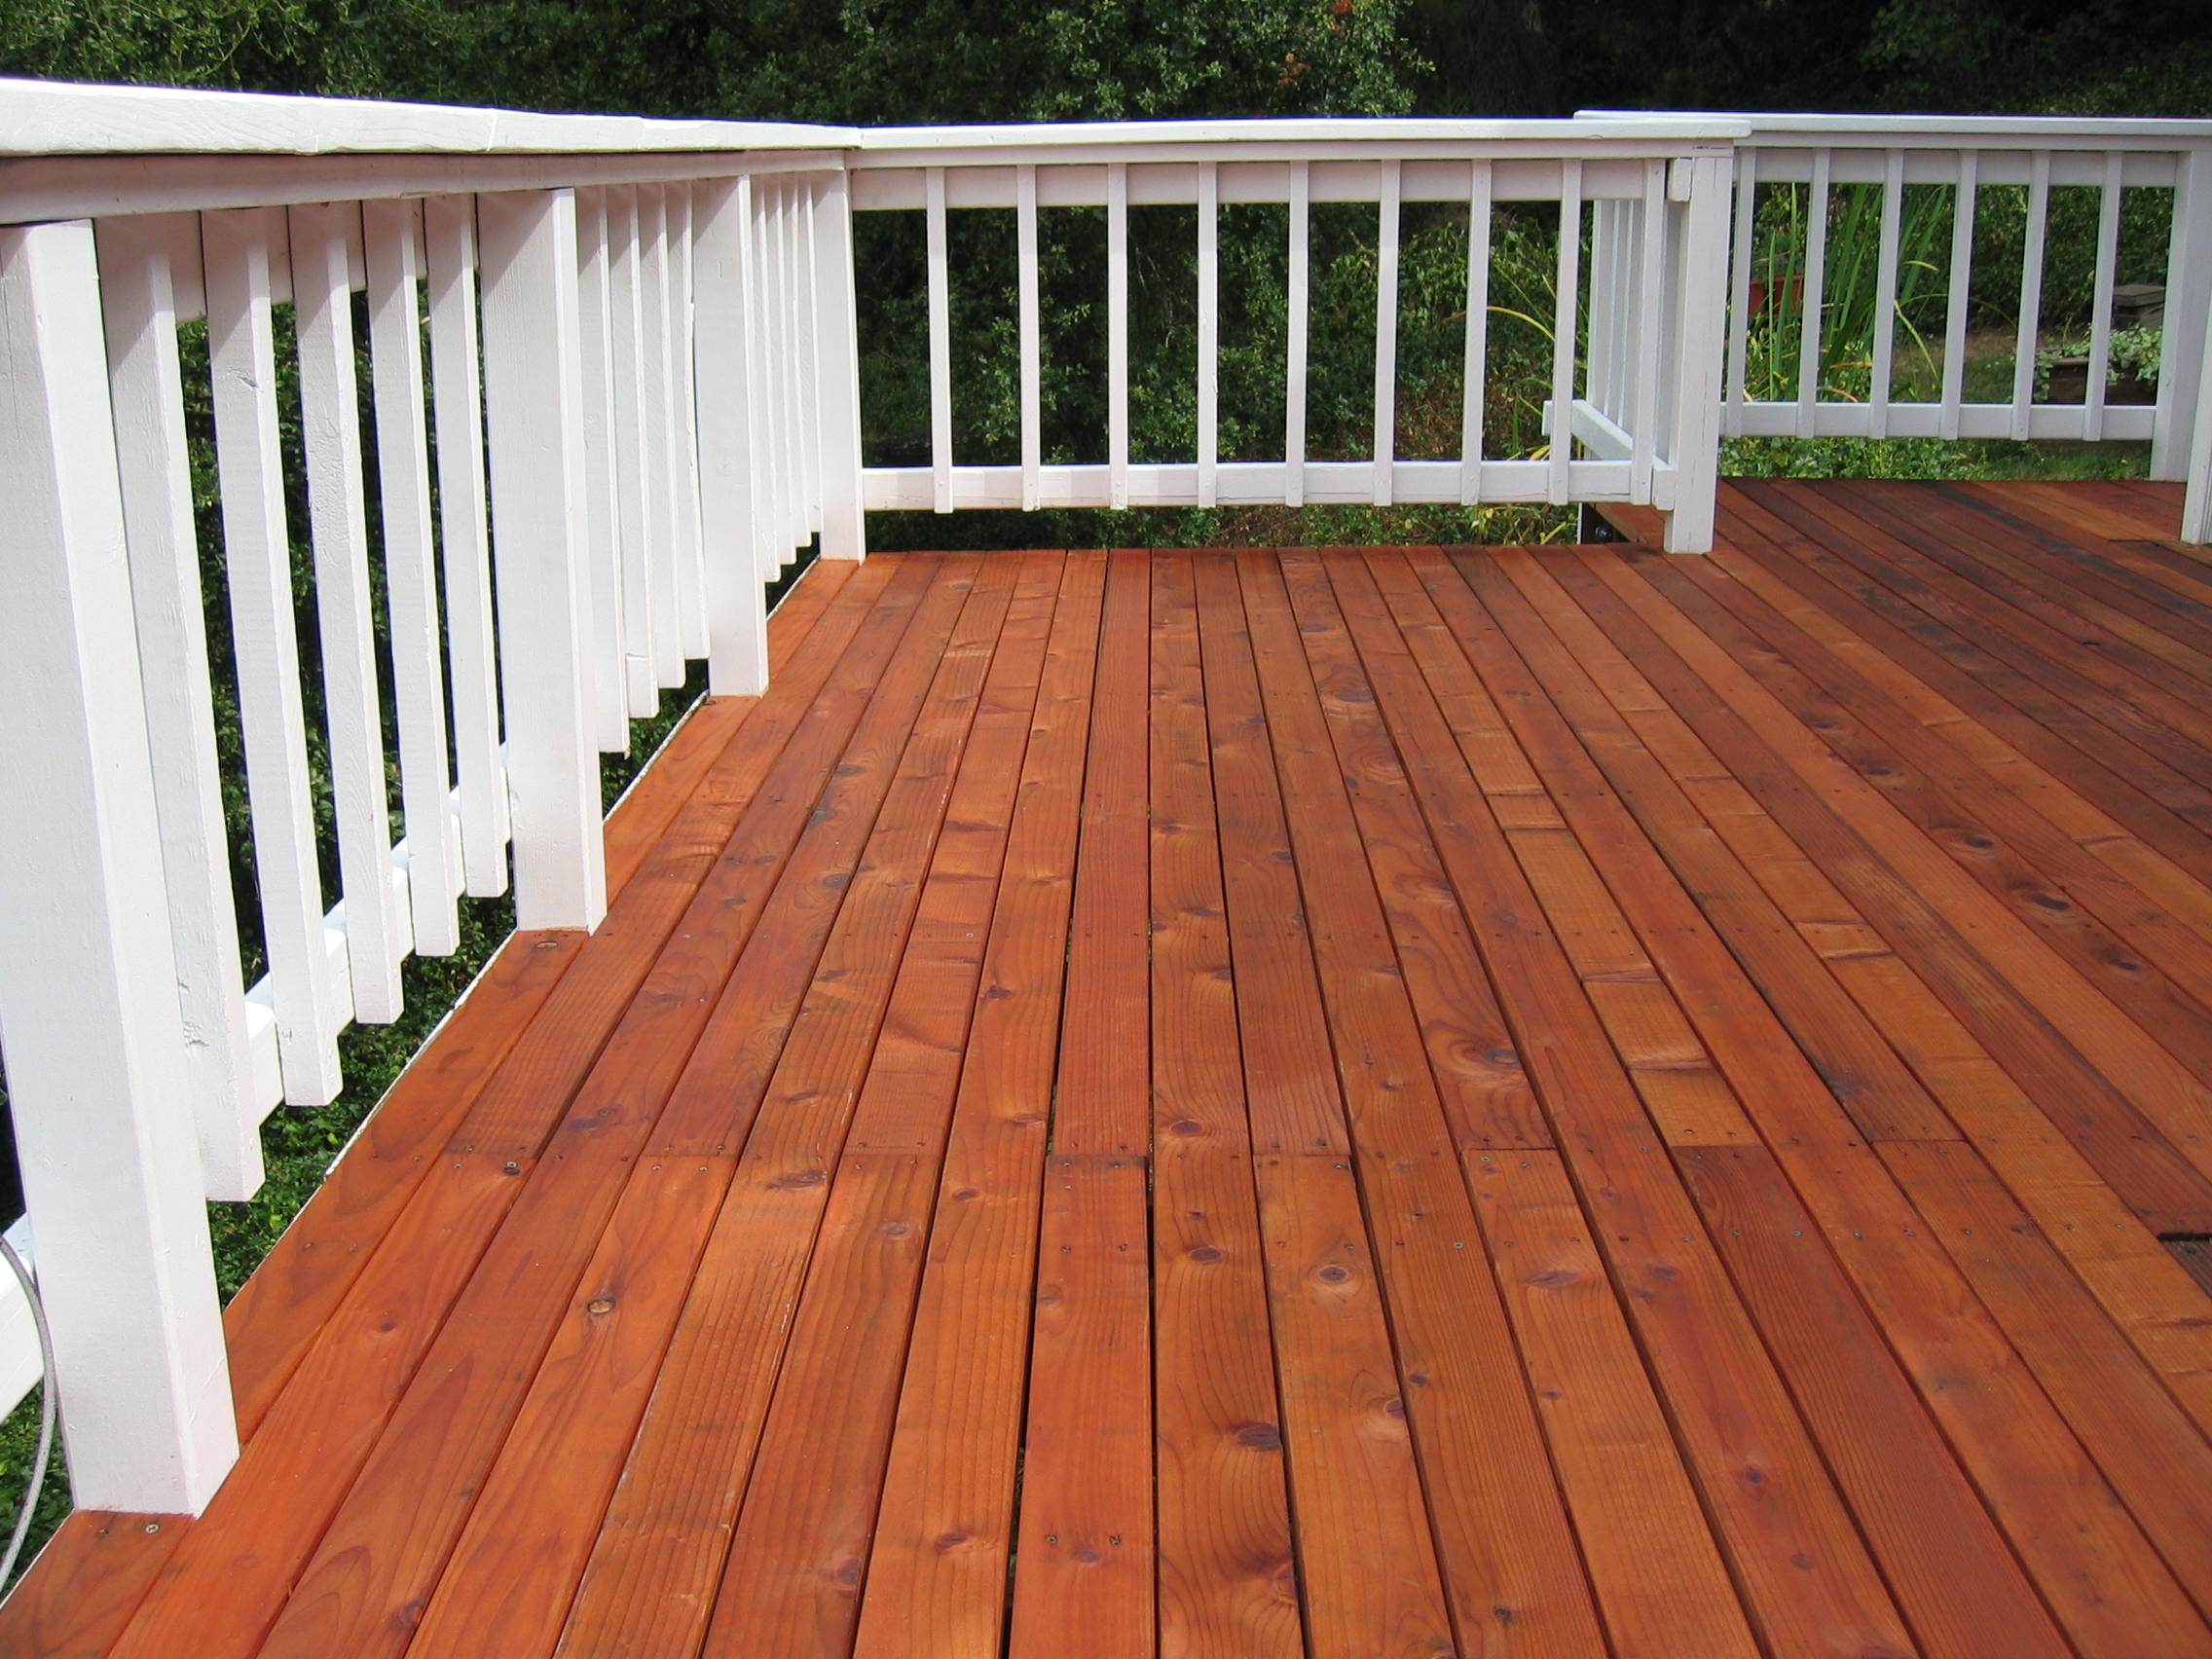 Fence   Deck StainingFence   Deck Staining Columbia Missouri. Exterior Wood Deck Sealer. Home Design Ideas